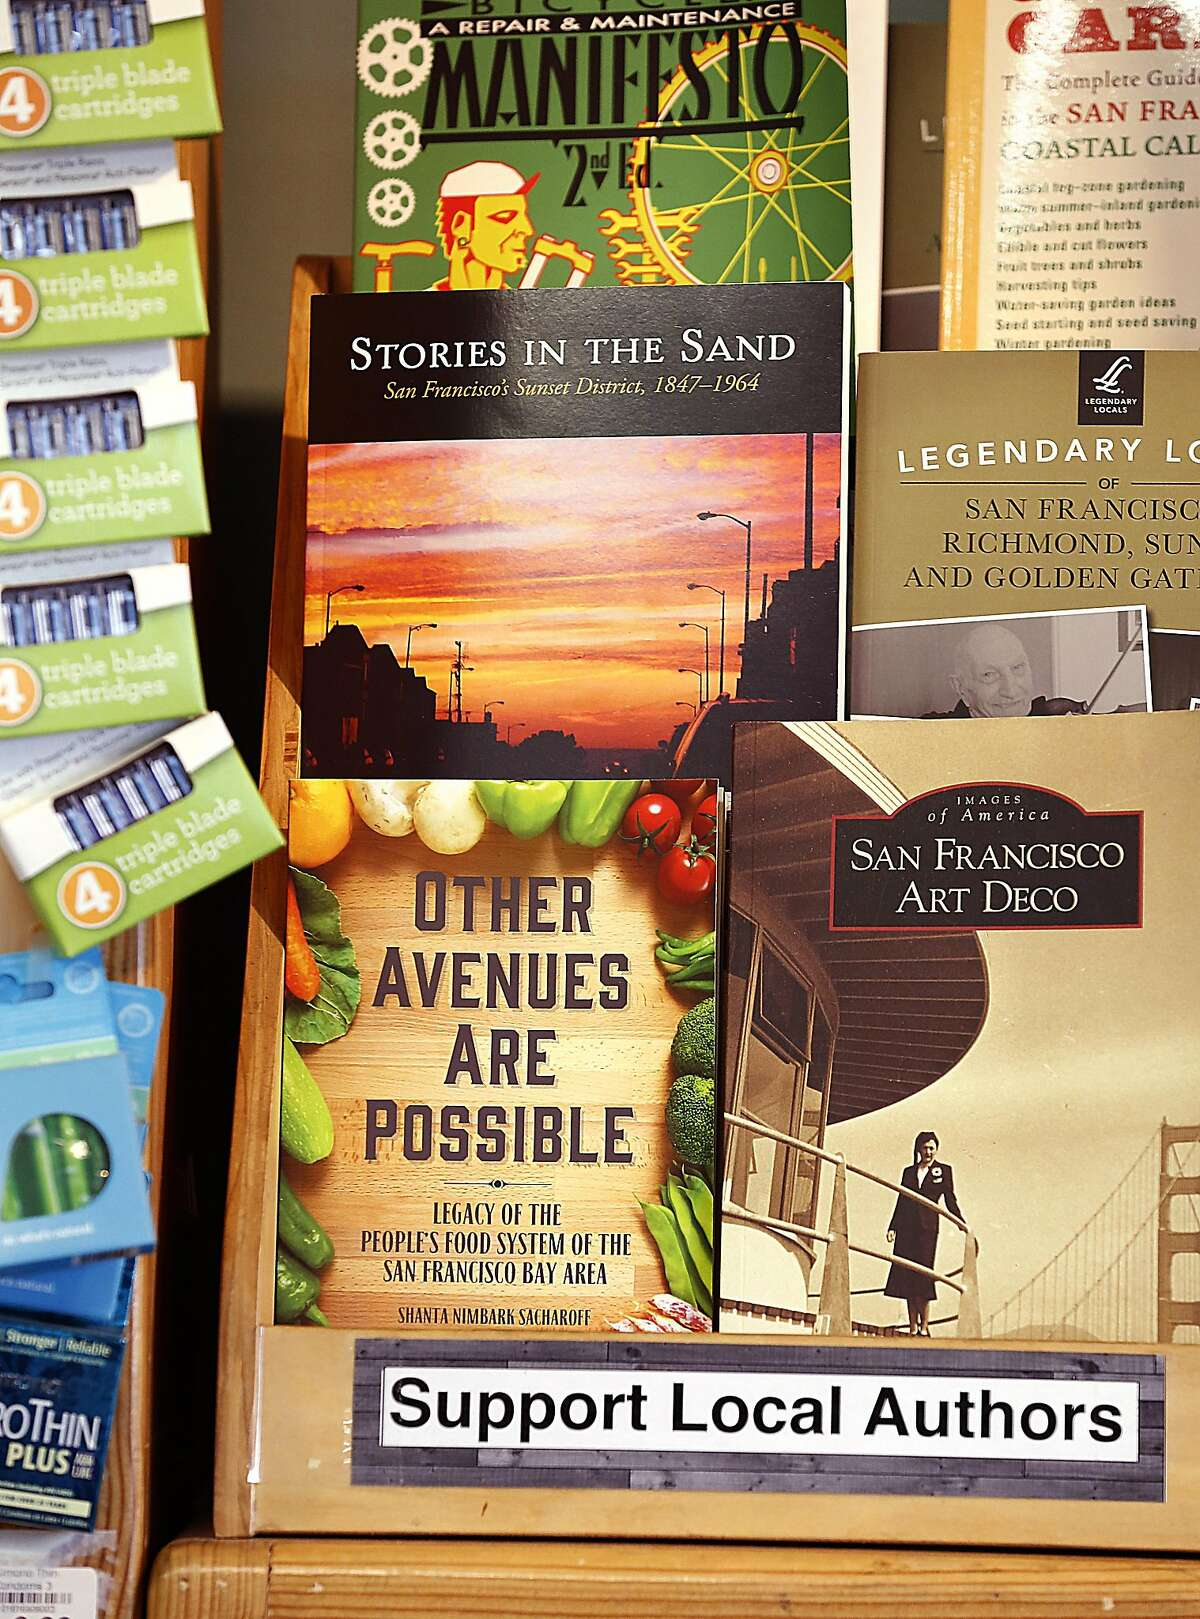 Shanta Nimbark Sacharoff has just written 'Other Avenues are Possible', a history book about the network of food co-ops, buying clubs, and businesses in the 1970s on Thursday, February 2, 2017, in San Francisco, Calif.